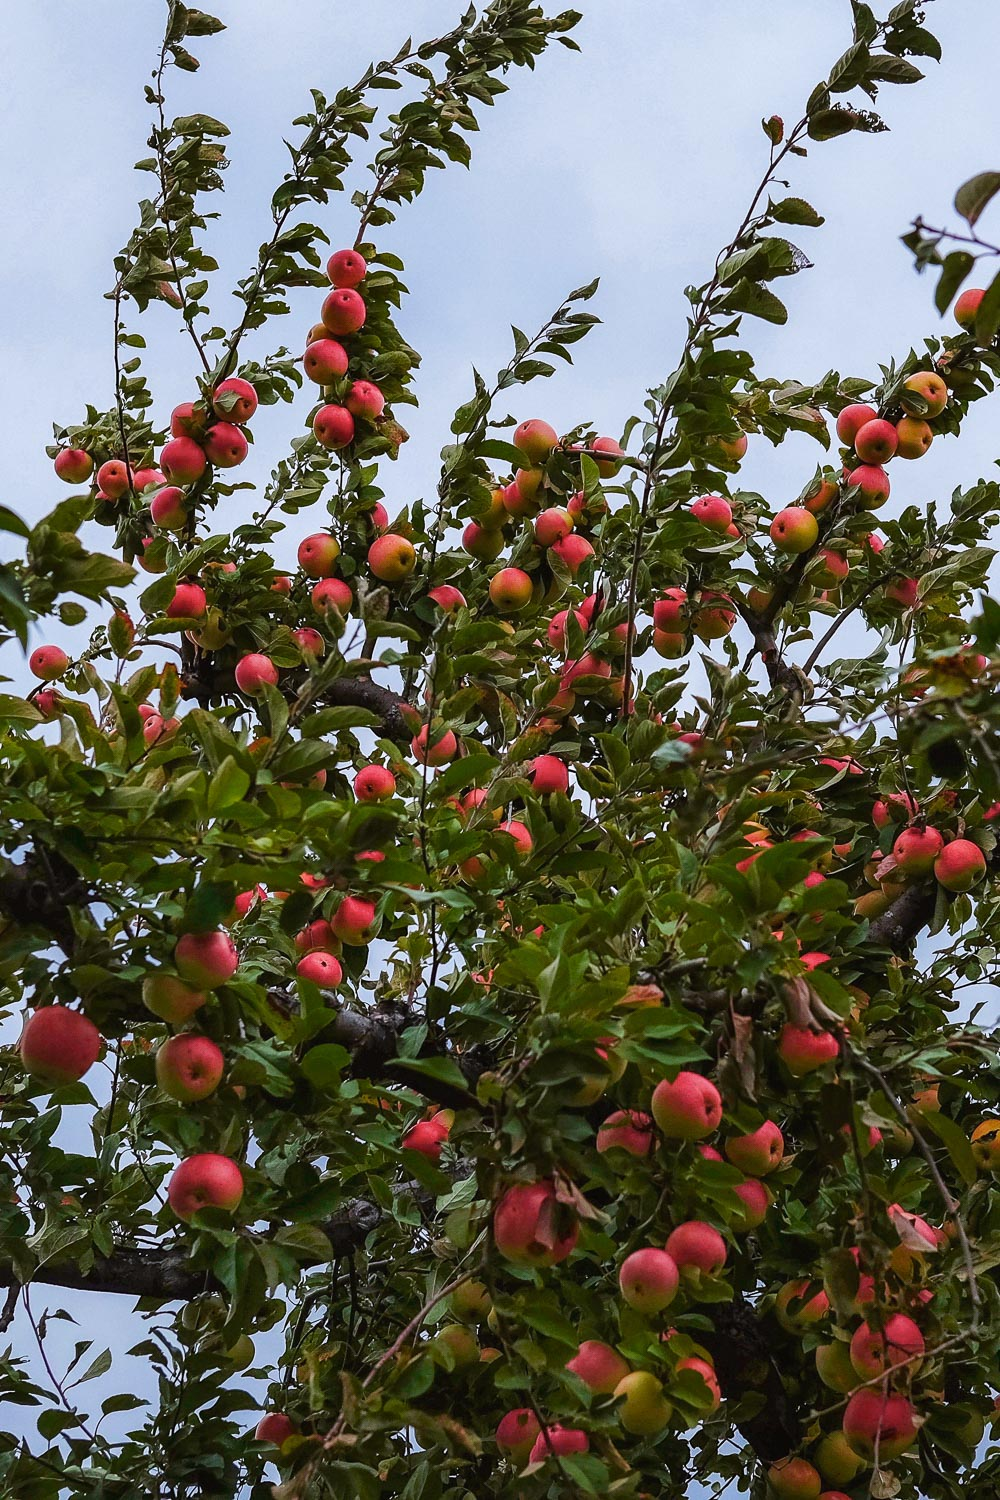 Apples for picking at Chudleigh's Apple Farm